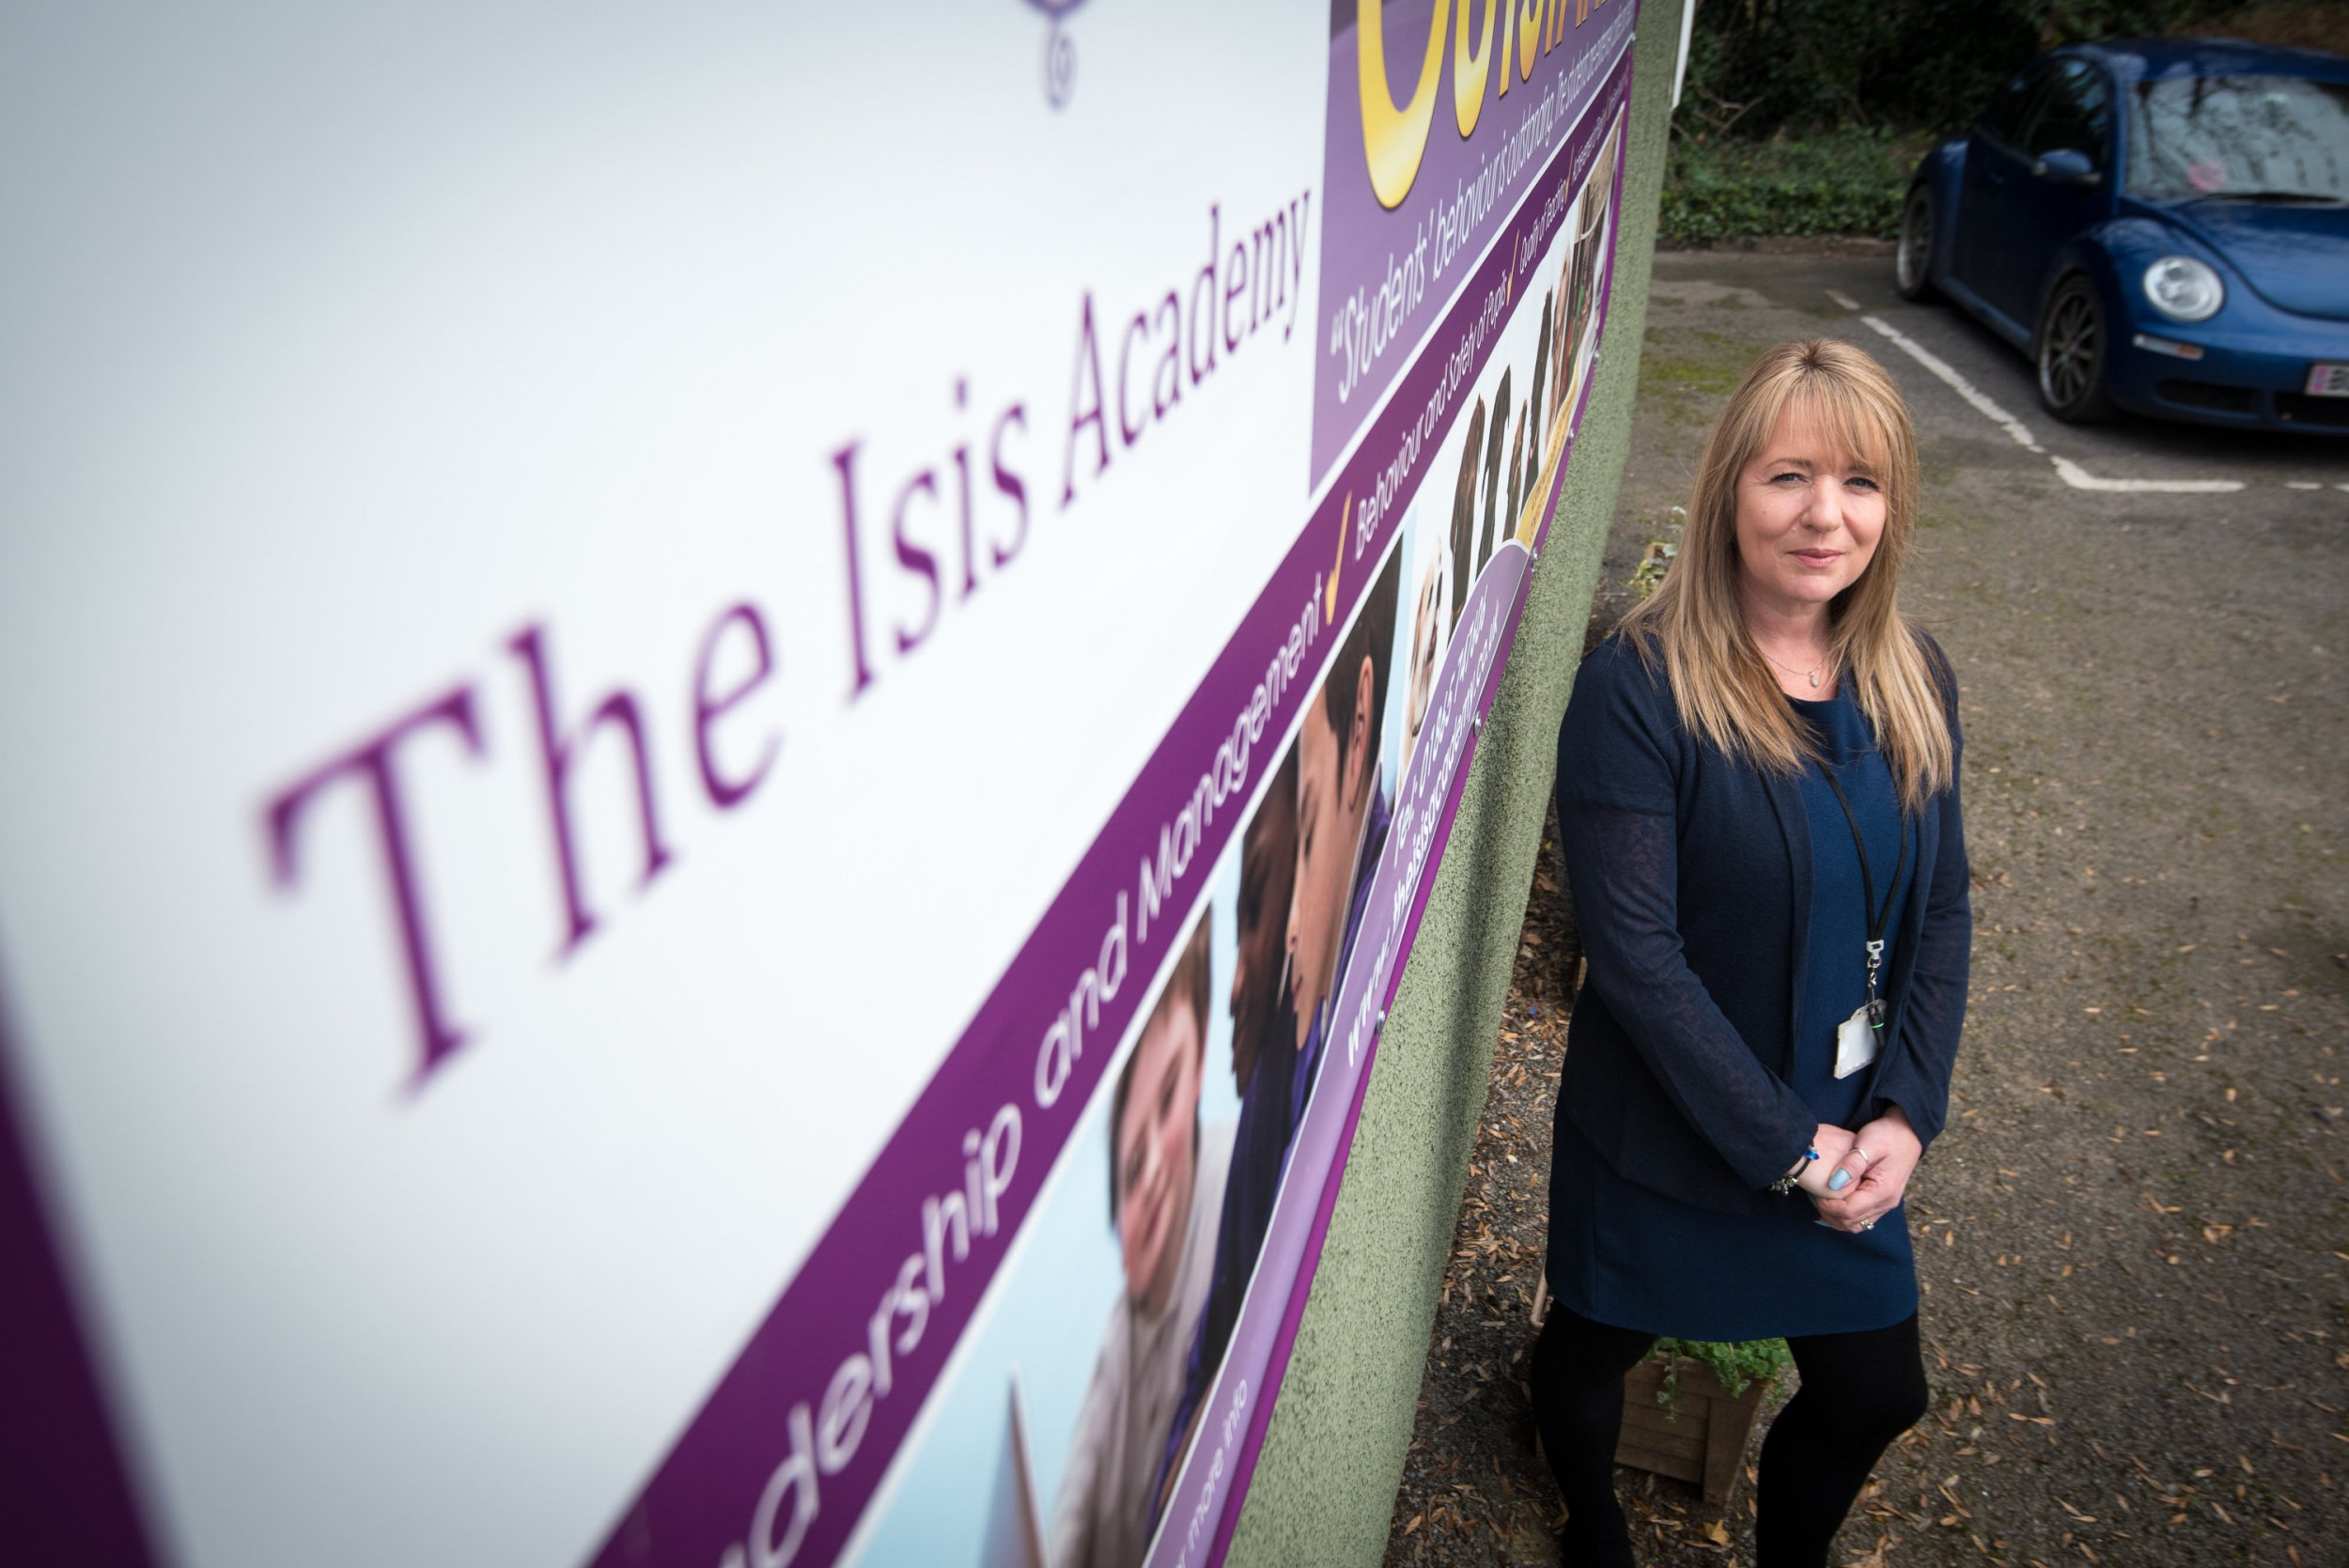 Kay Willett with one of the old signs at the newly renamed Iffley Academy - the school has changed its name because it used to be called Isis Academy. See SWNS story SWTERROR; A school called 'Isis Academy' has been forced to change its name - after jibes about pupils being trained as terrorists. The school in Oxford has been re-branded Iffley Academy to avoid confusion with the Islamic State in Iraq and Syria (ISIS). It was given the unfortunate monicker after becoming an academy in 2013 and was named after part of the River Thames which flows nearby and is known as 'The Isis'. Headteacher Kay Willett decided to change the name after being asked 'are you training the children to be terrorists?' and photos of pupils and terrorists appeared when she searched the school online.